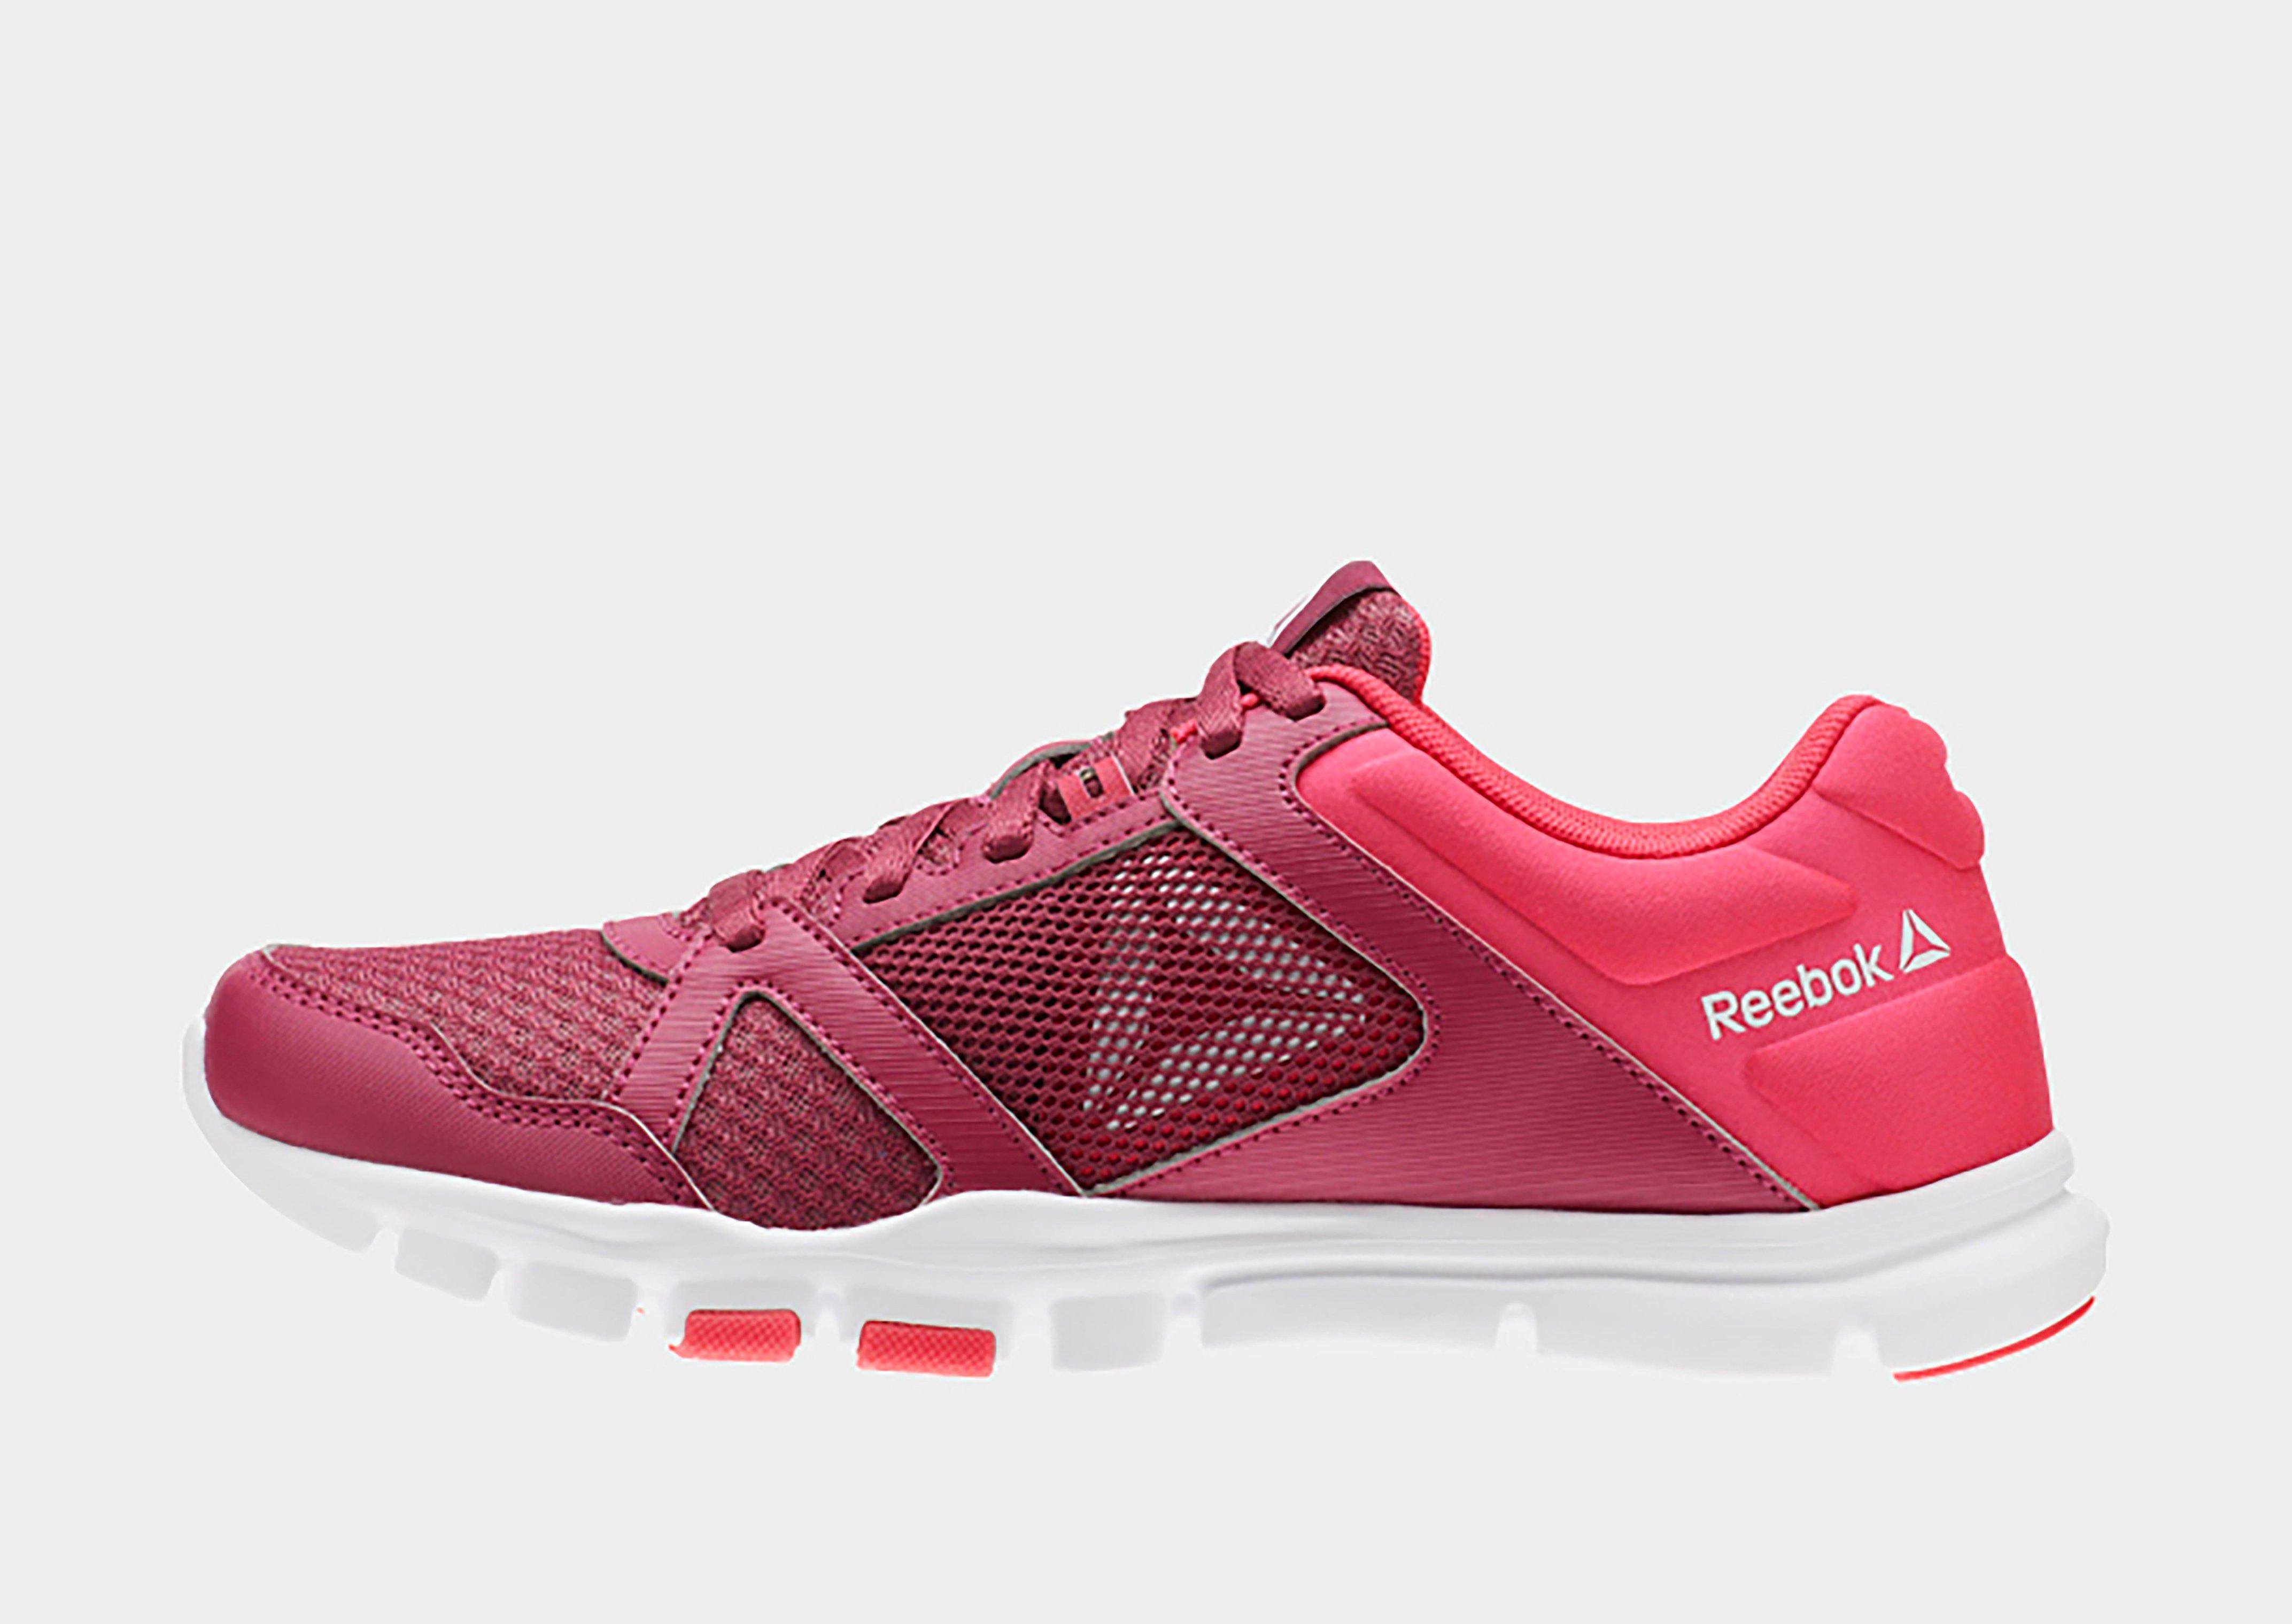 9e1edcfd5b2 Reebok   s Yourflex Trainette 10 Mt Fitness Shoes in Pink - Save ...